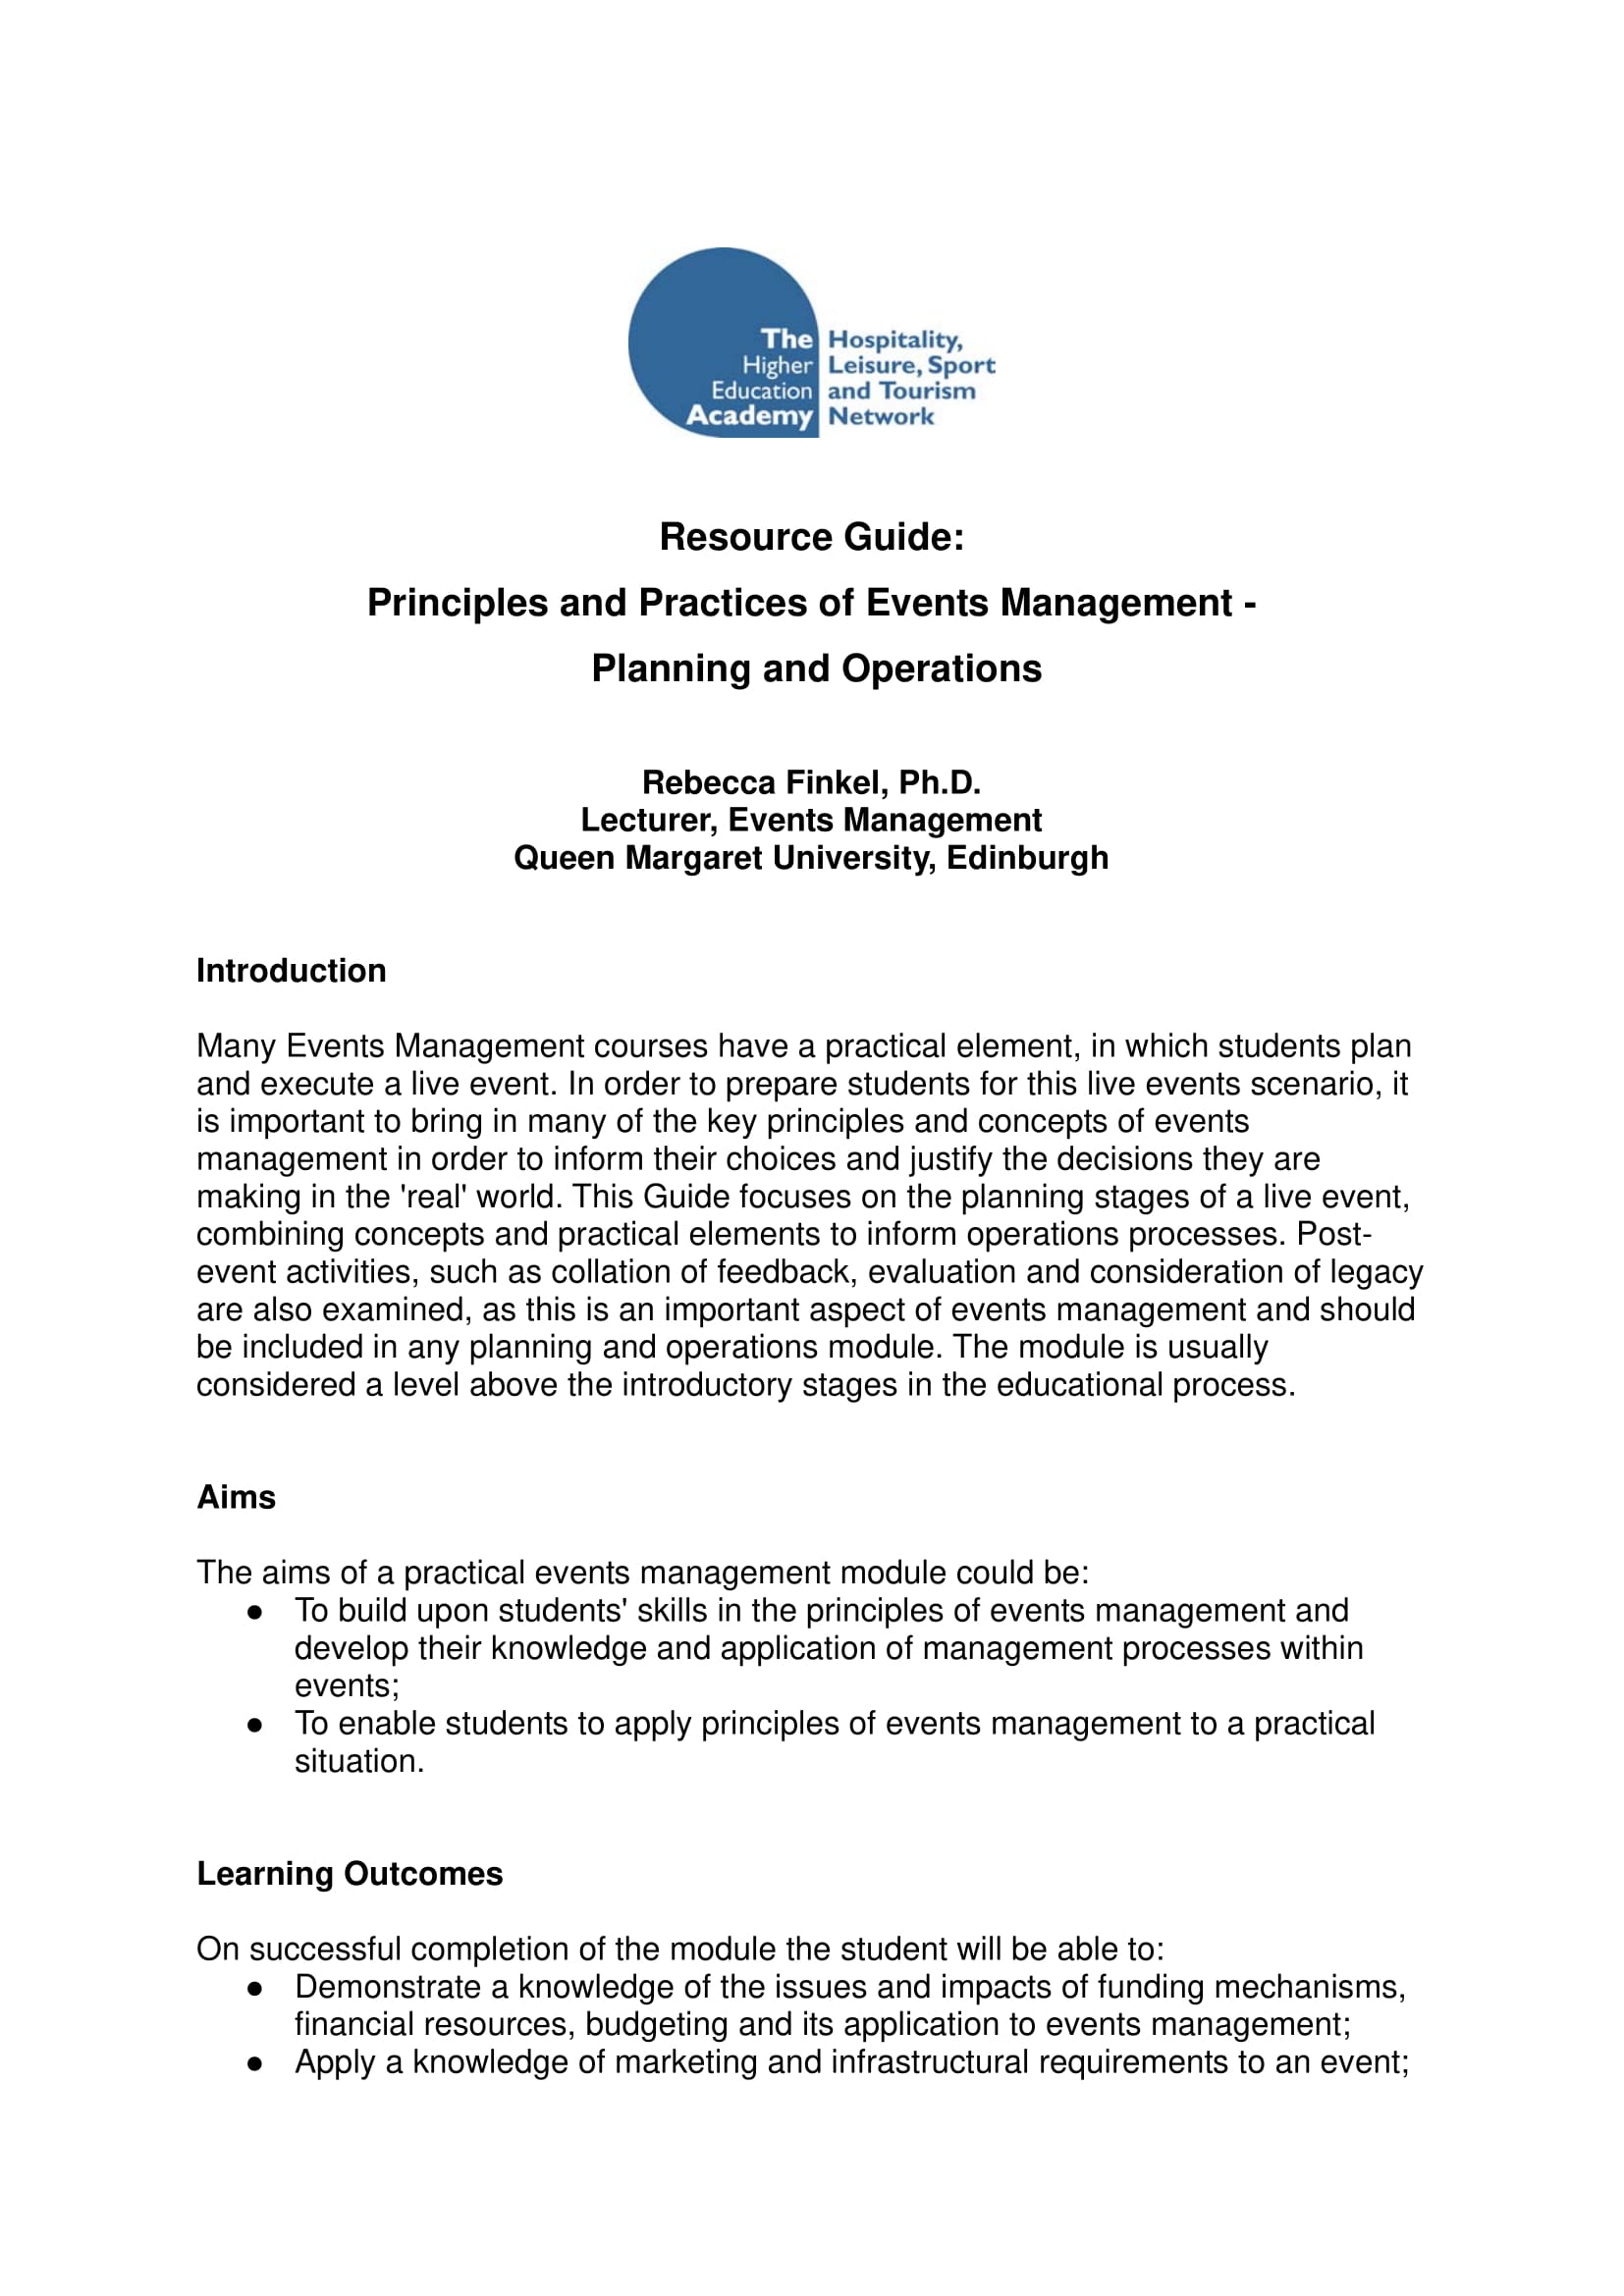 event operational plan and management principles and practices example 01